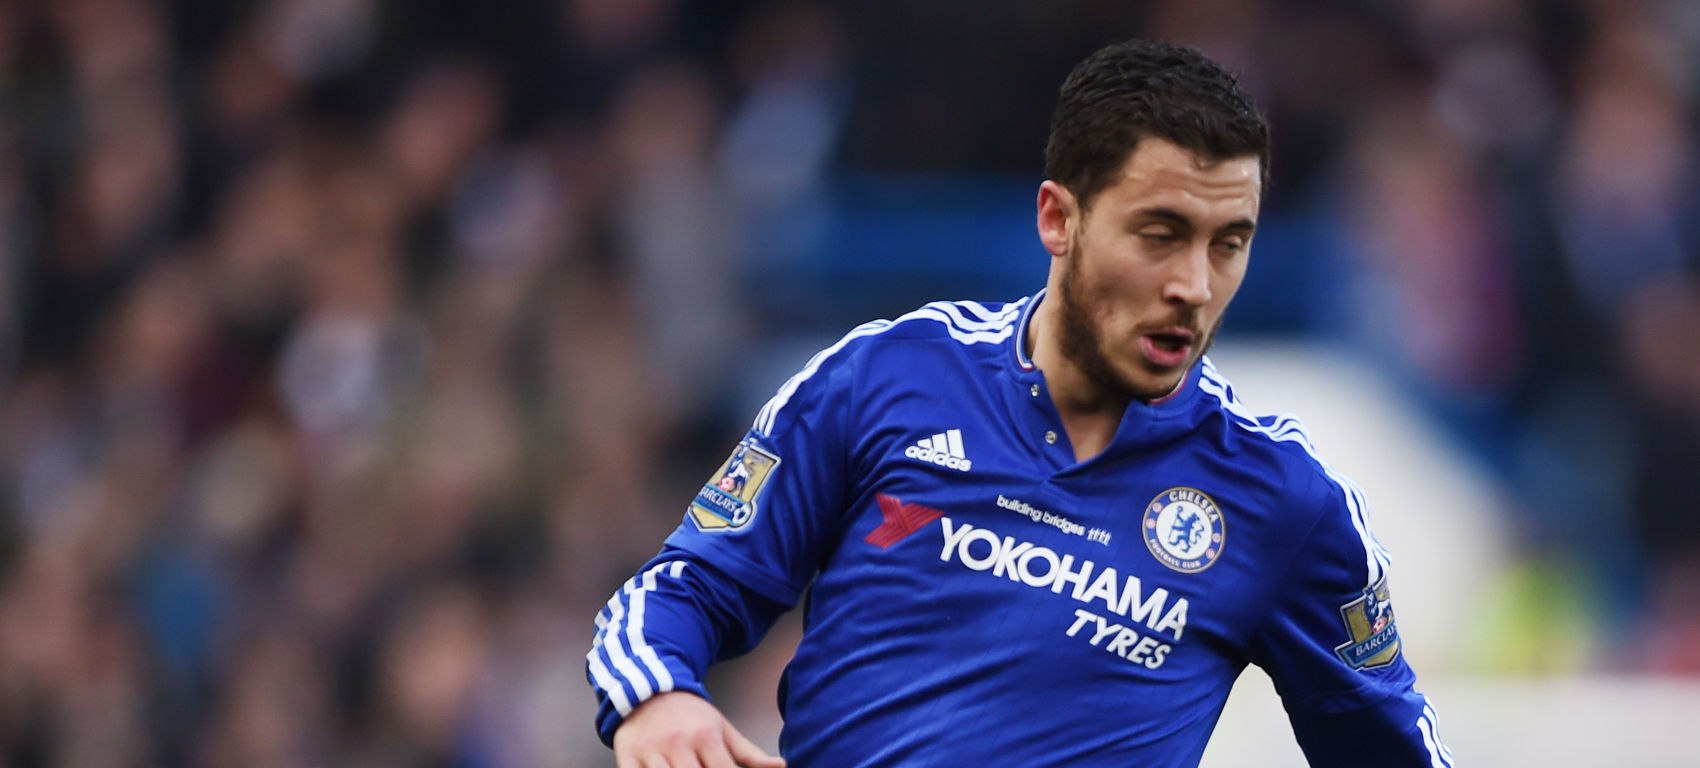 → In which Gameweek did Eden Hazard belatedly score his first Premier League goal of 2015/16?